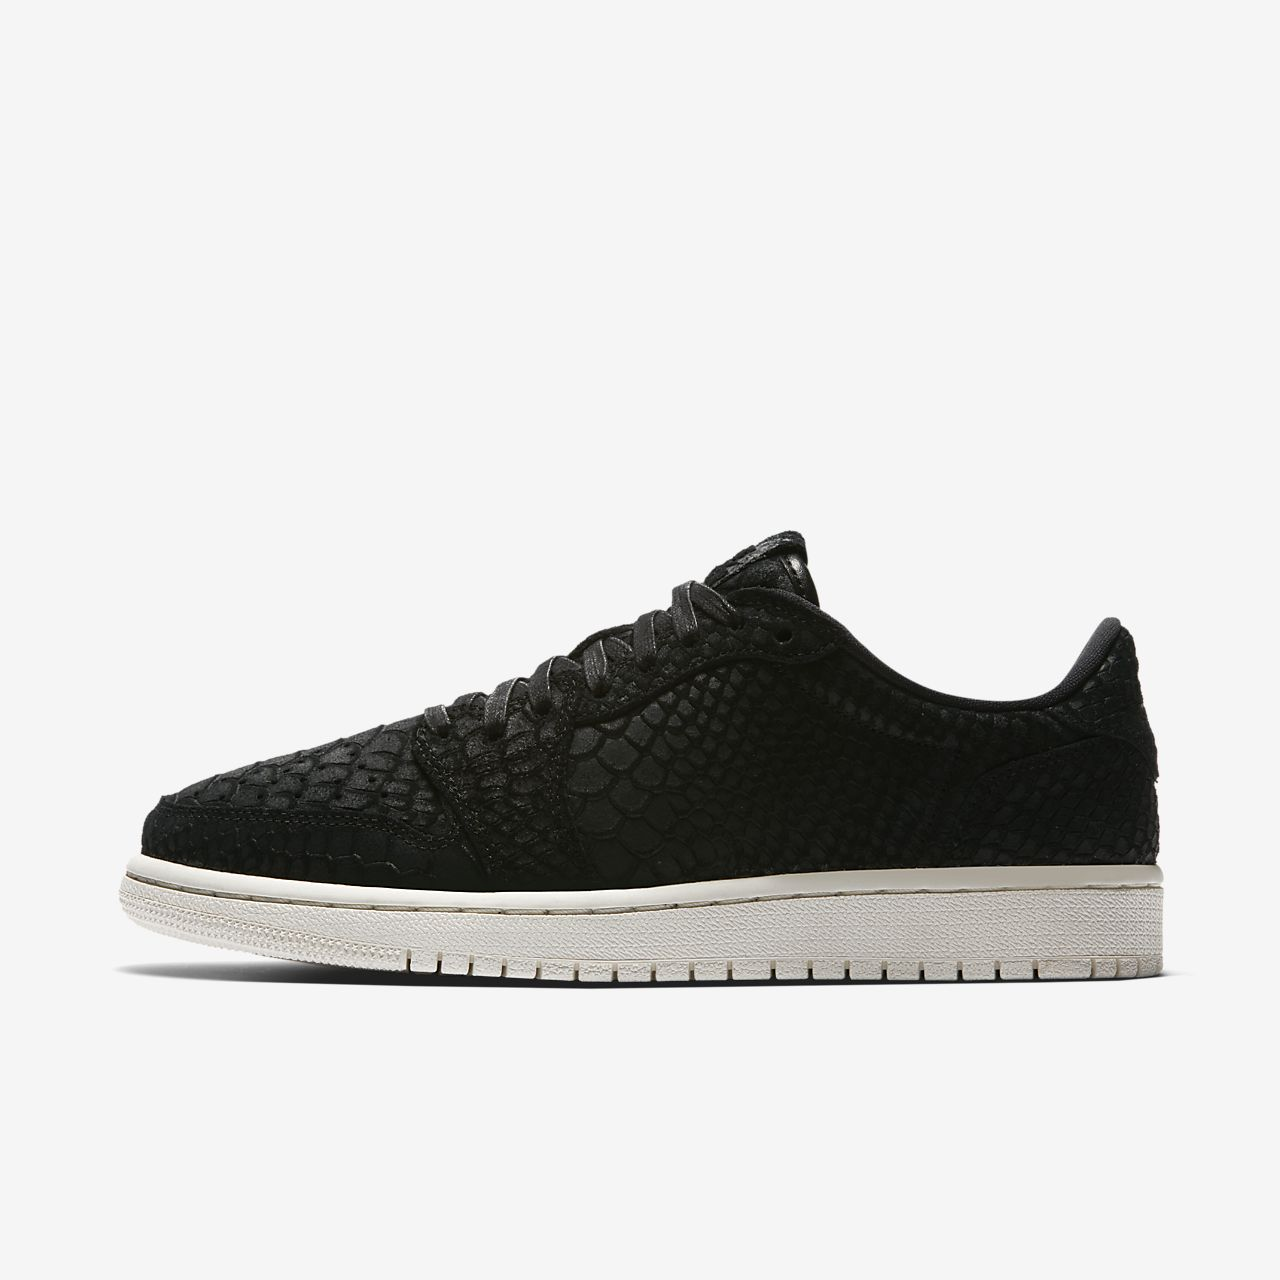 air jordan 1 low black nz